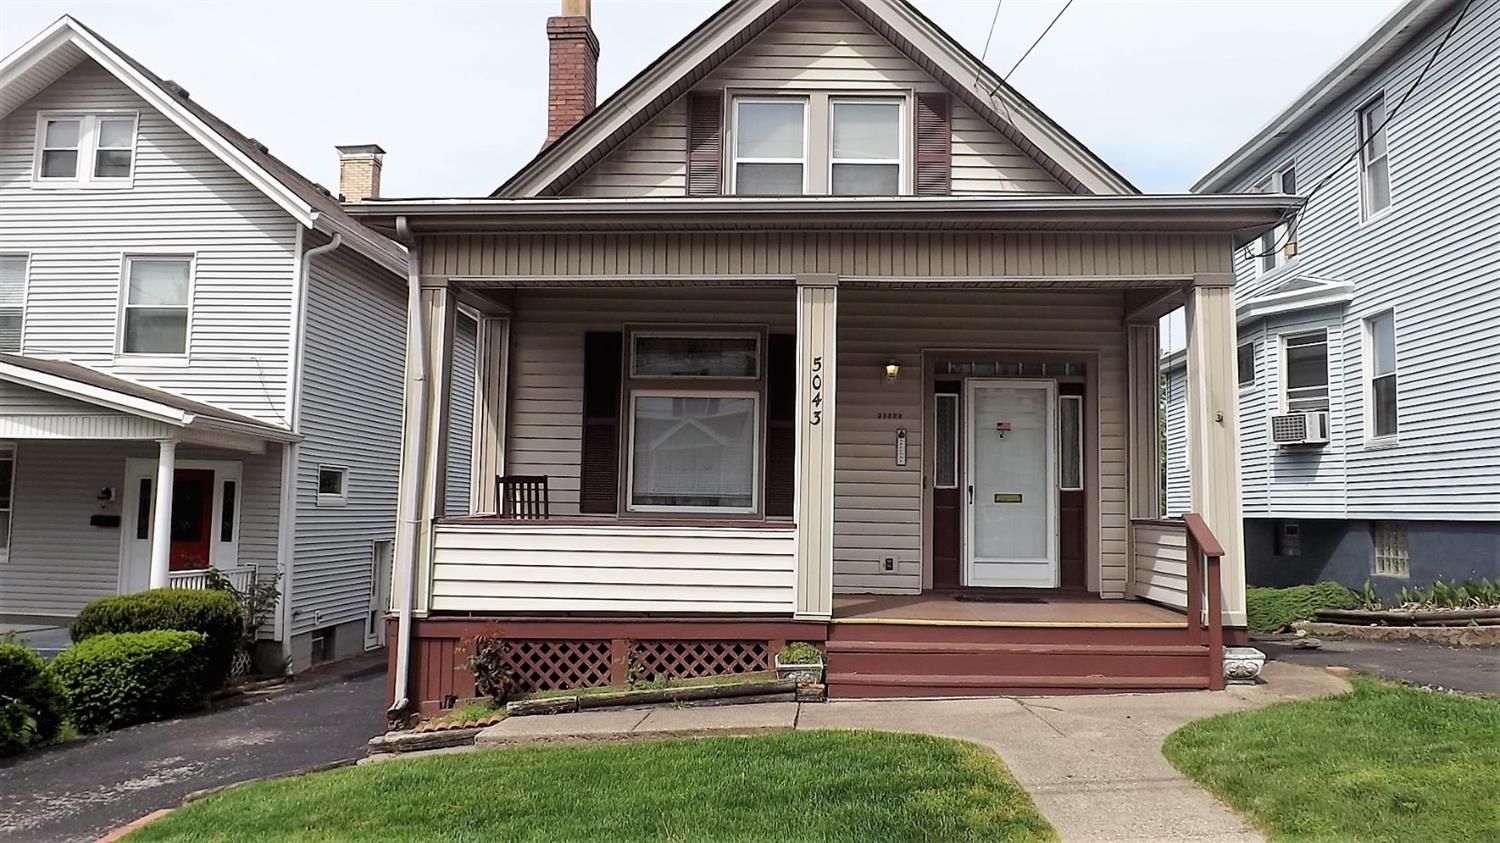 5043 Marion Ave Norwood Oh 45212 Listing Details Mls